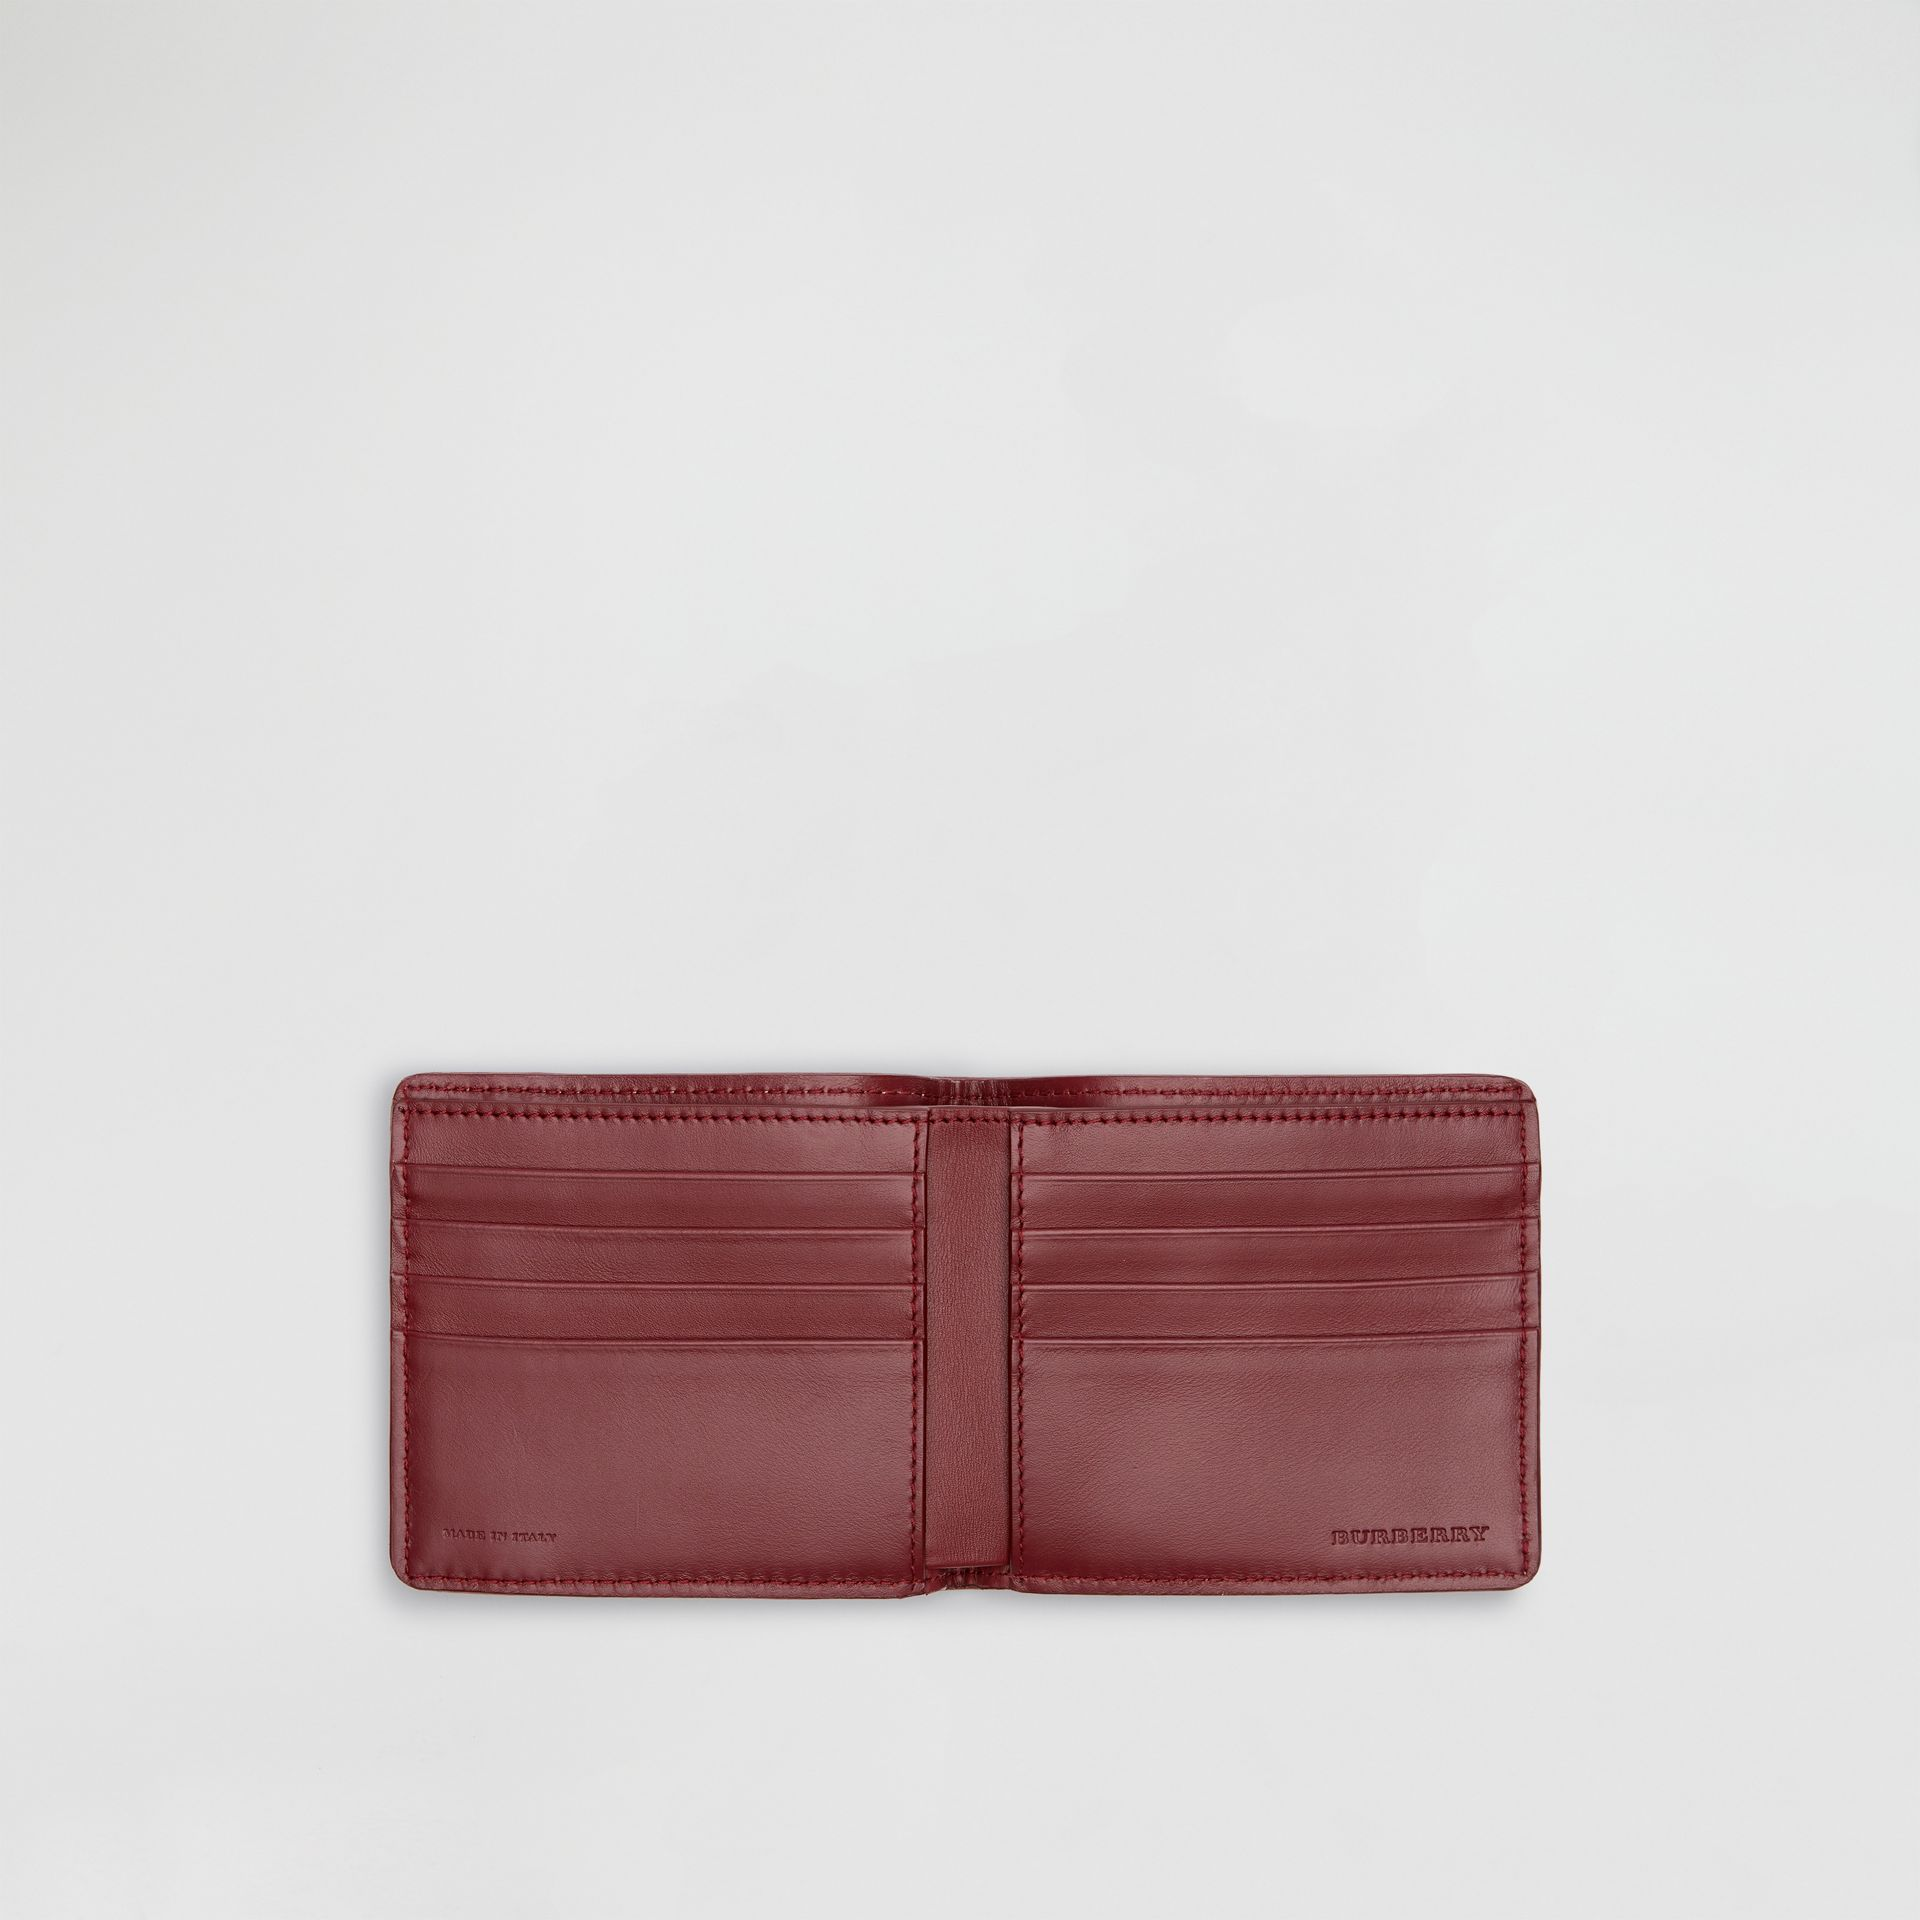 1983 Check and Leather International Bifold Wallet in Antique Red - Men | Burberry Hong Kong - gallery image 3